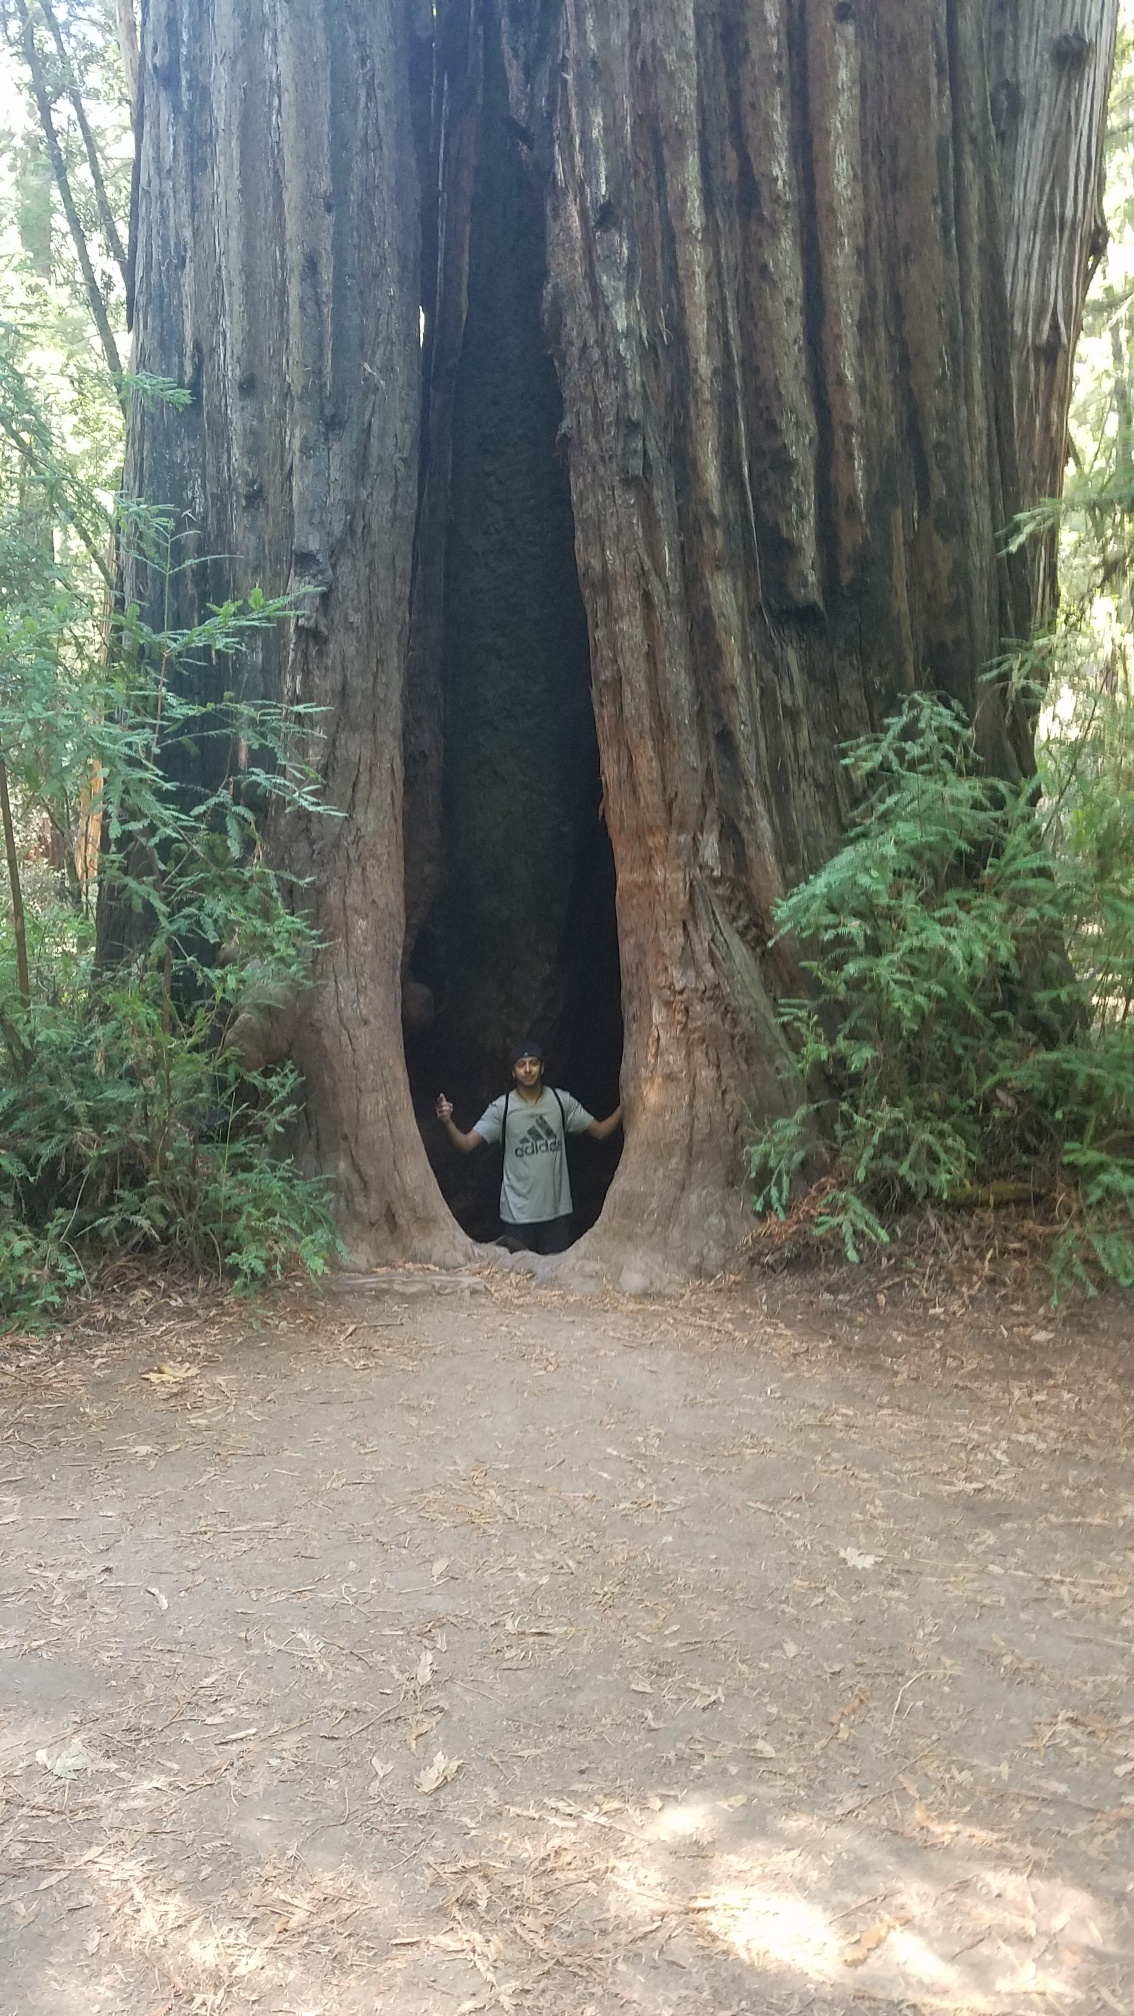 Edward Gutierrez standing inside a Giant Sequoia Tree in Armstrong Redwoods State Nature Reserve | October 2018